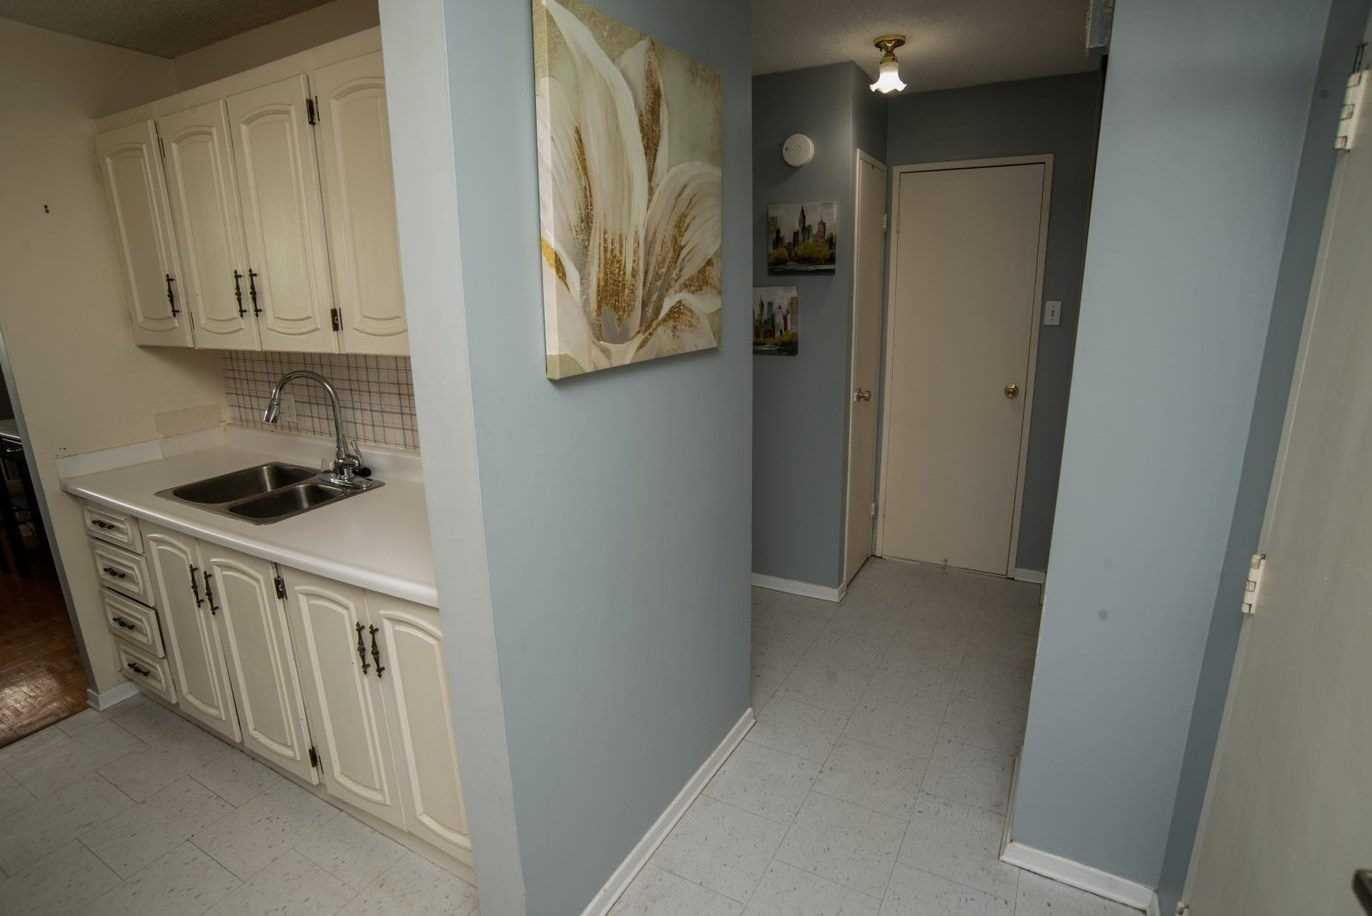 Image 3 of 20 showing inside of 1 Bedroom Condo Apt Apartment for Sale at 215 Glenridge Ave Unit# 310, St. Catharines L2T3J7